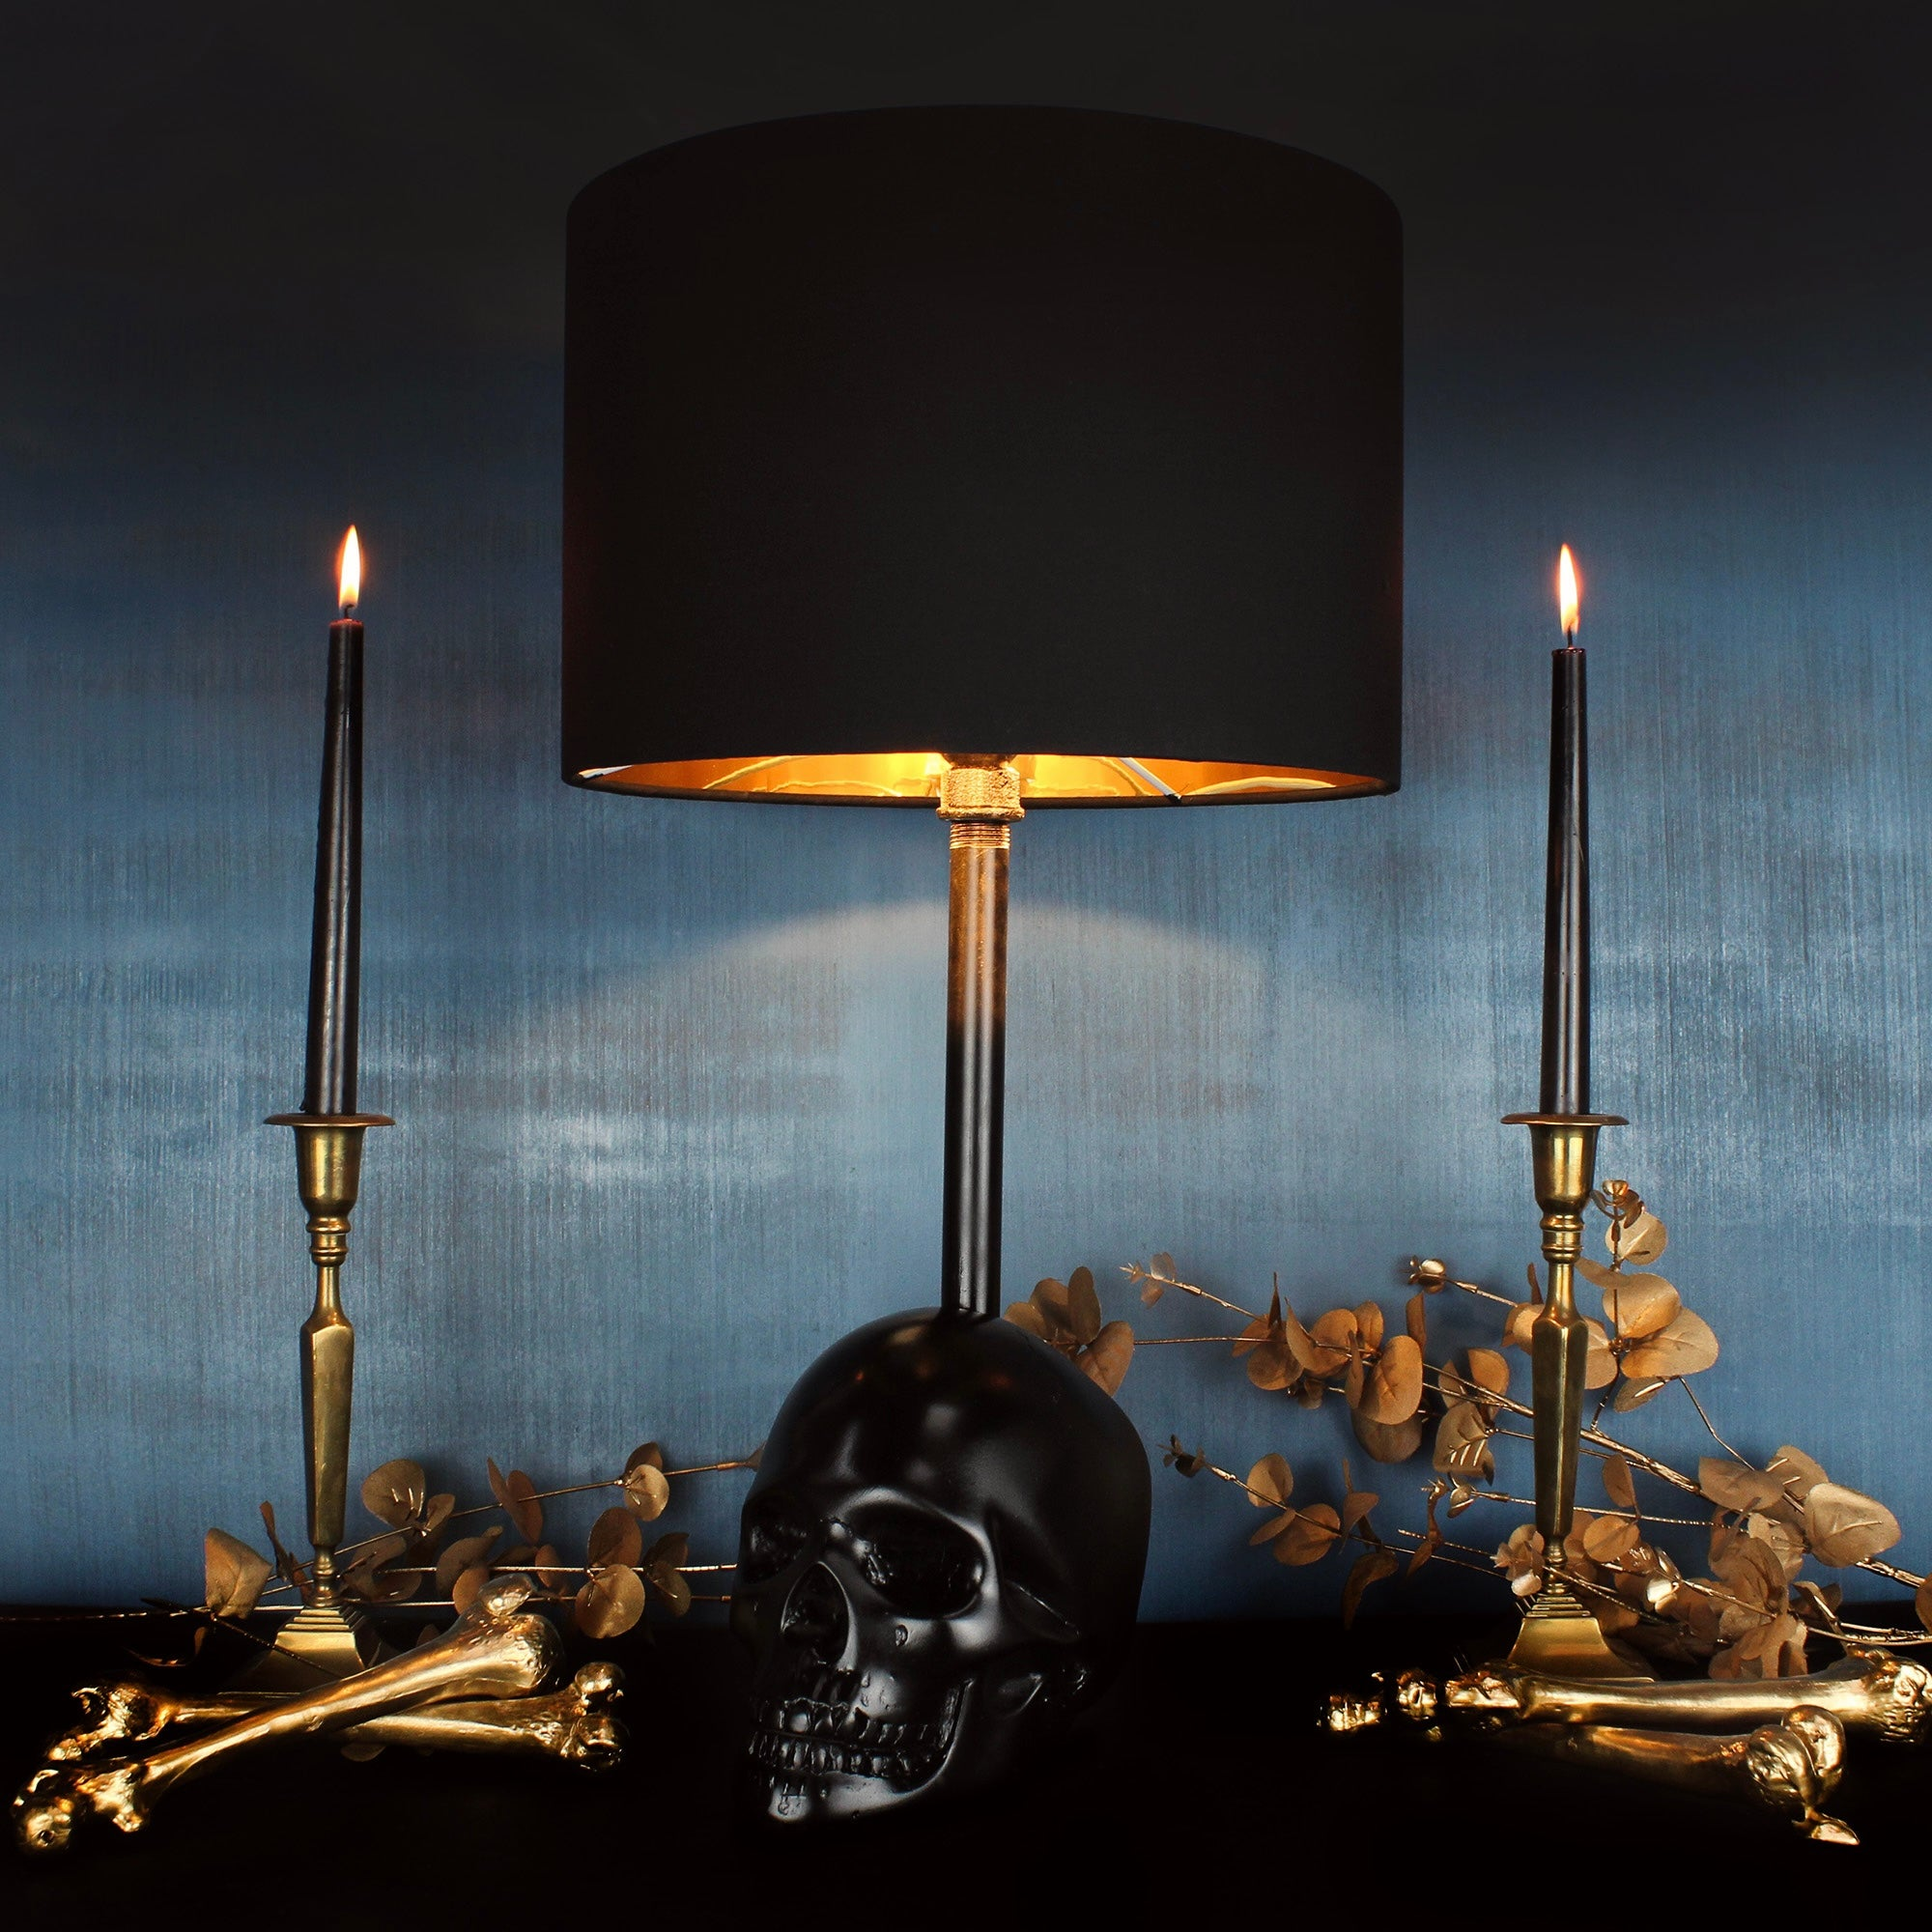 Skull Lamp - The Edison